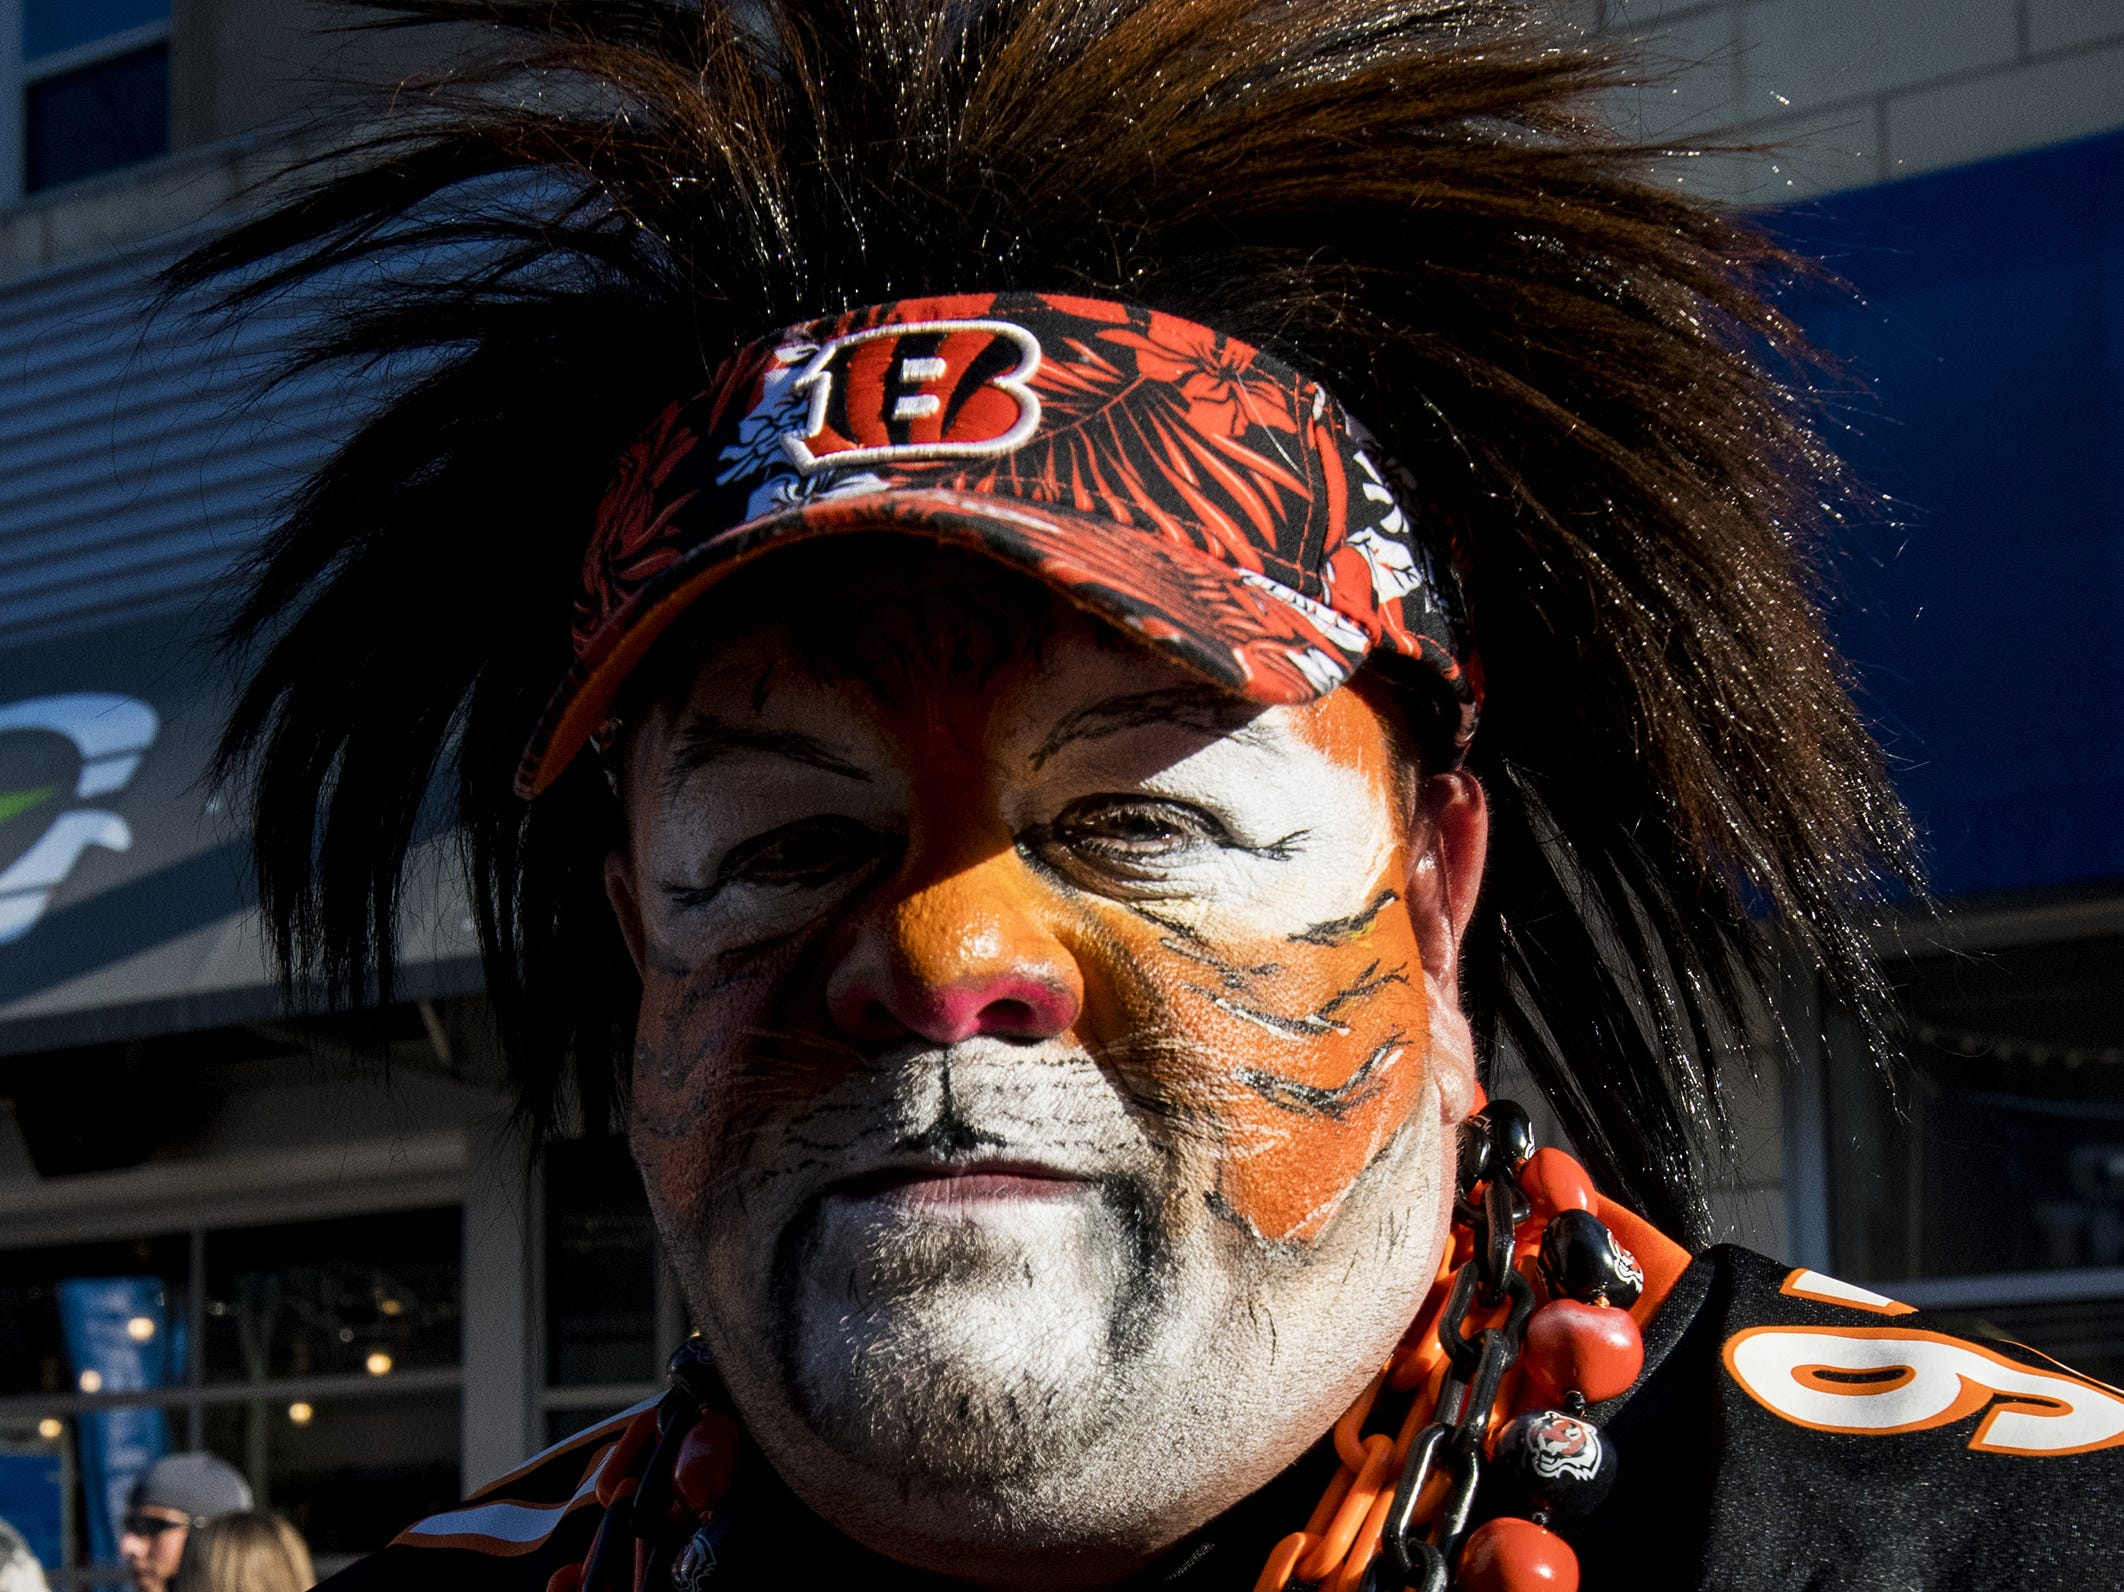 Anthony Brooks of Eastgate sports his bengal tiger facepaint in the Bud Light Tailgate zone before the Bengals game against the Baltimore Ravens Thursday, September 13, 2018 in Cincinnati, Ohio.